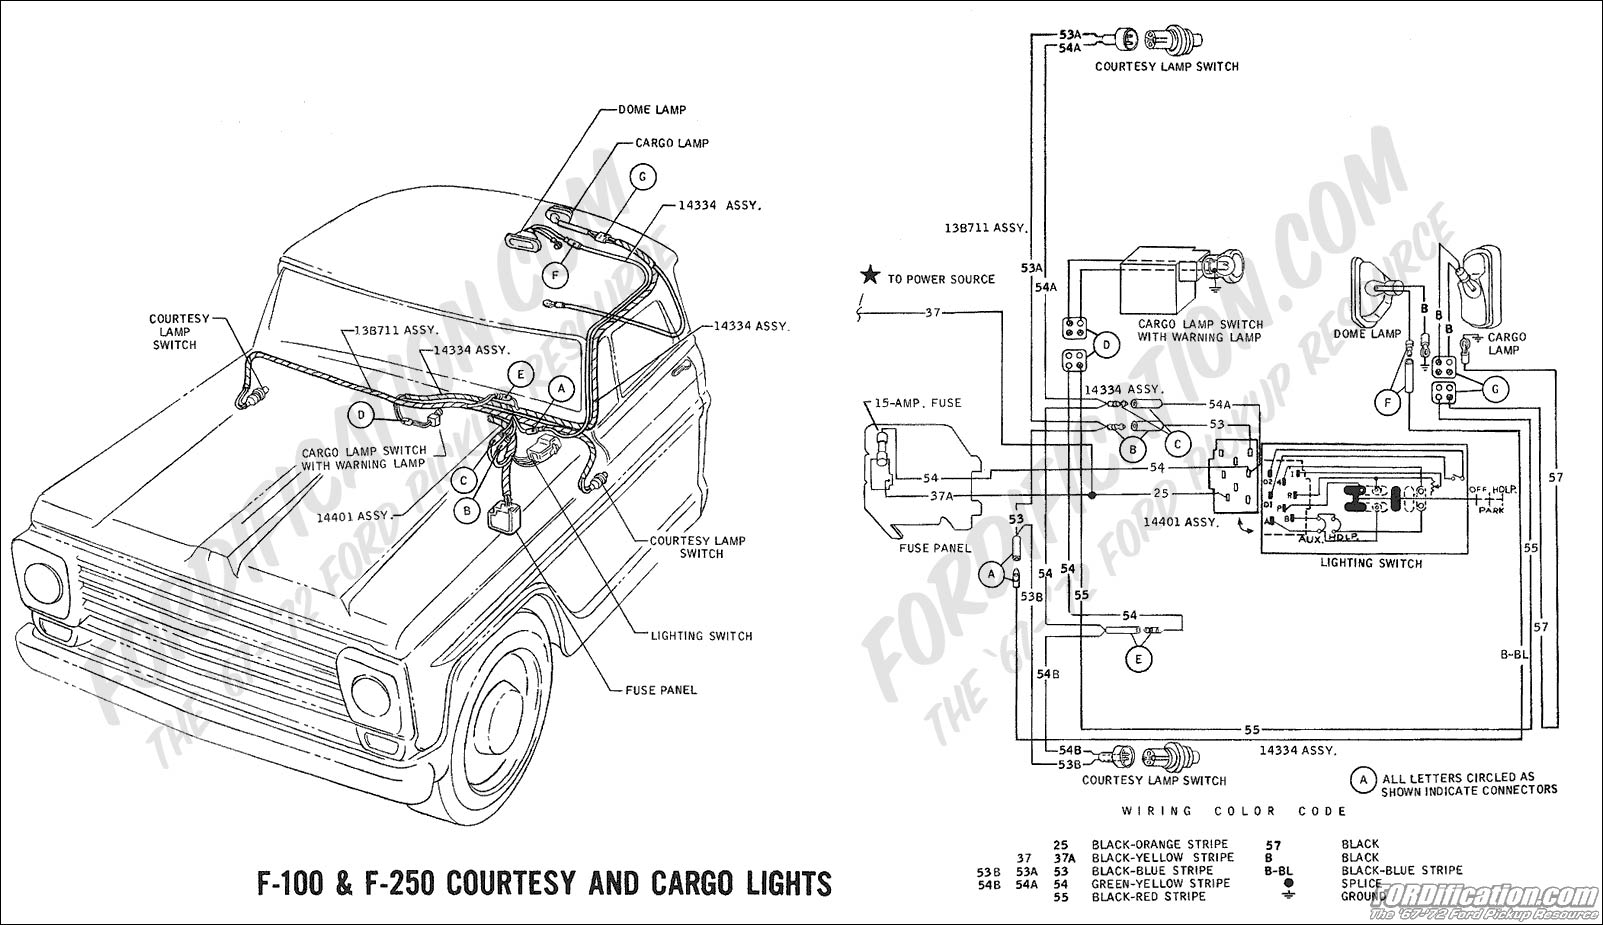 1979 jeep cj5 wiring schematic trusted wiring diagram 1957 jeep cj5 wiring- diagram 1979 ford